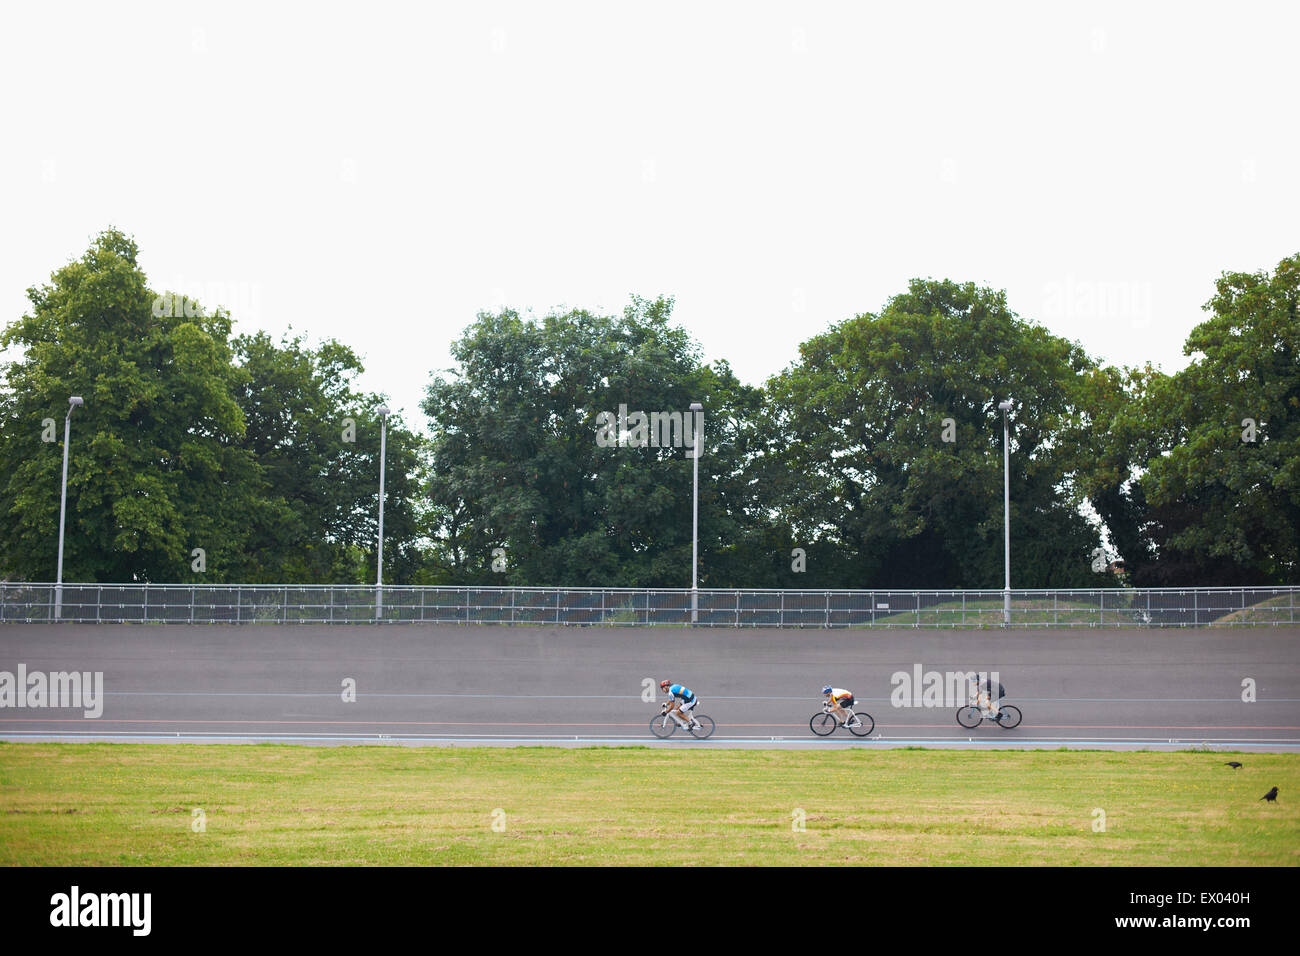 Three cyclists cycling on track at velodrome, outdoors Stock Photo